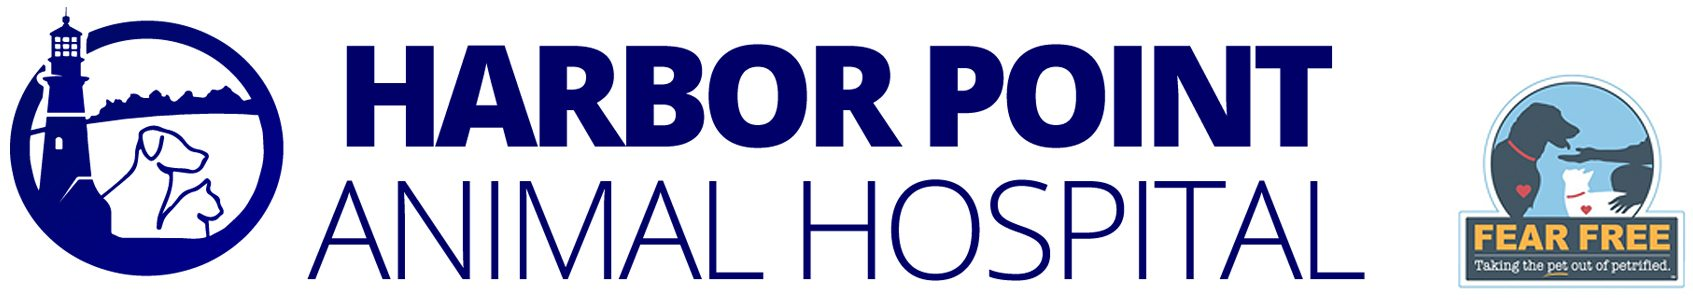 Harbor Point logo